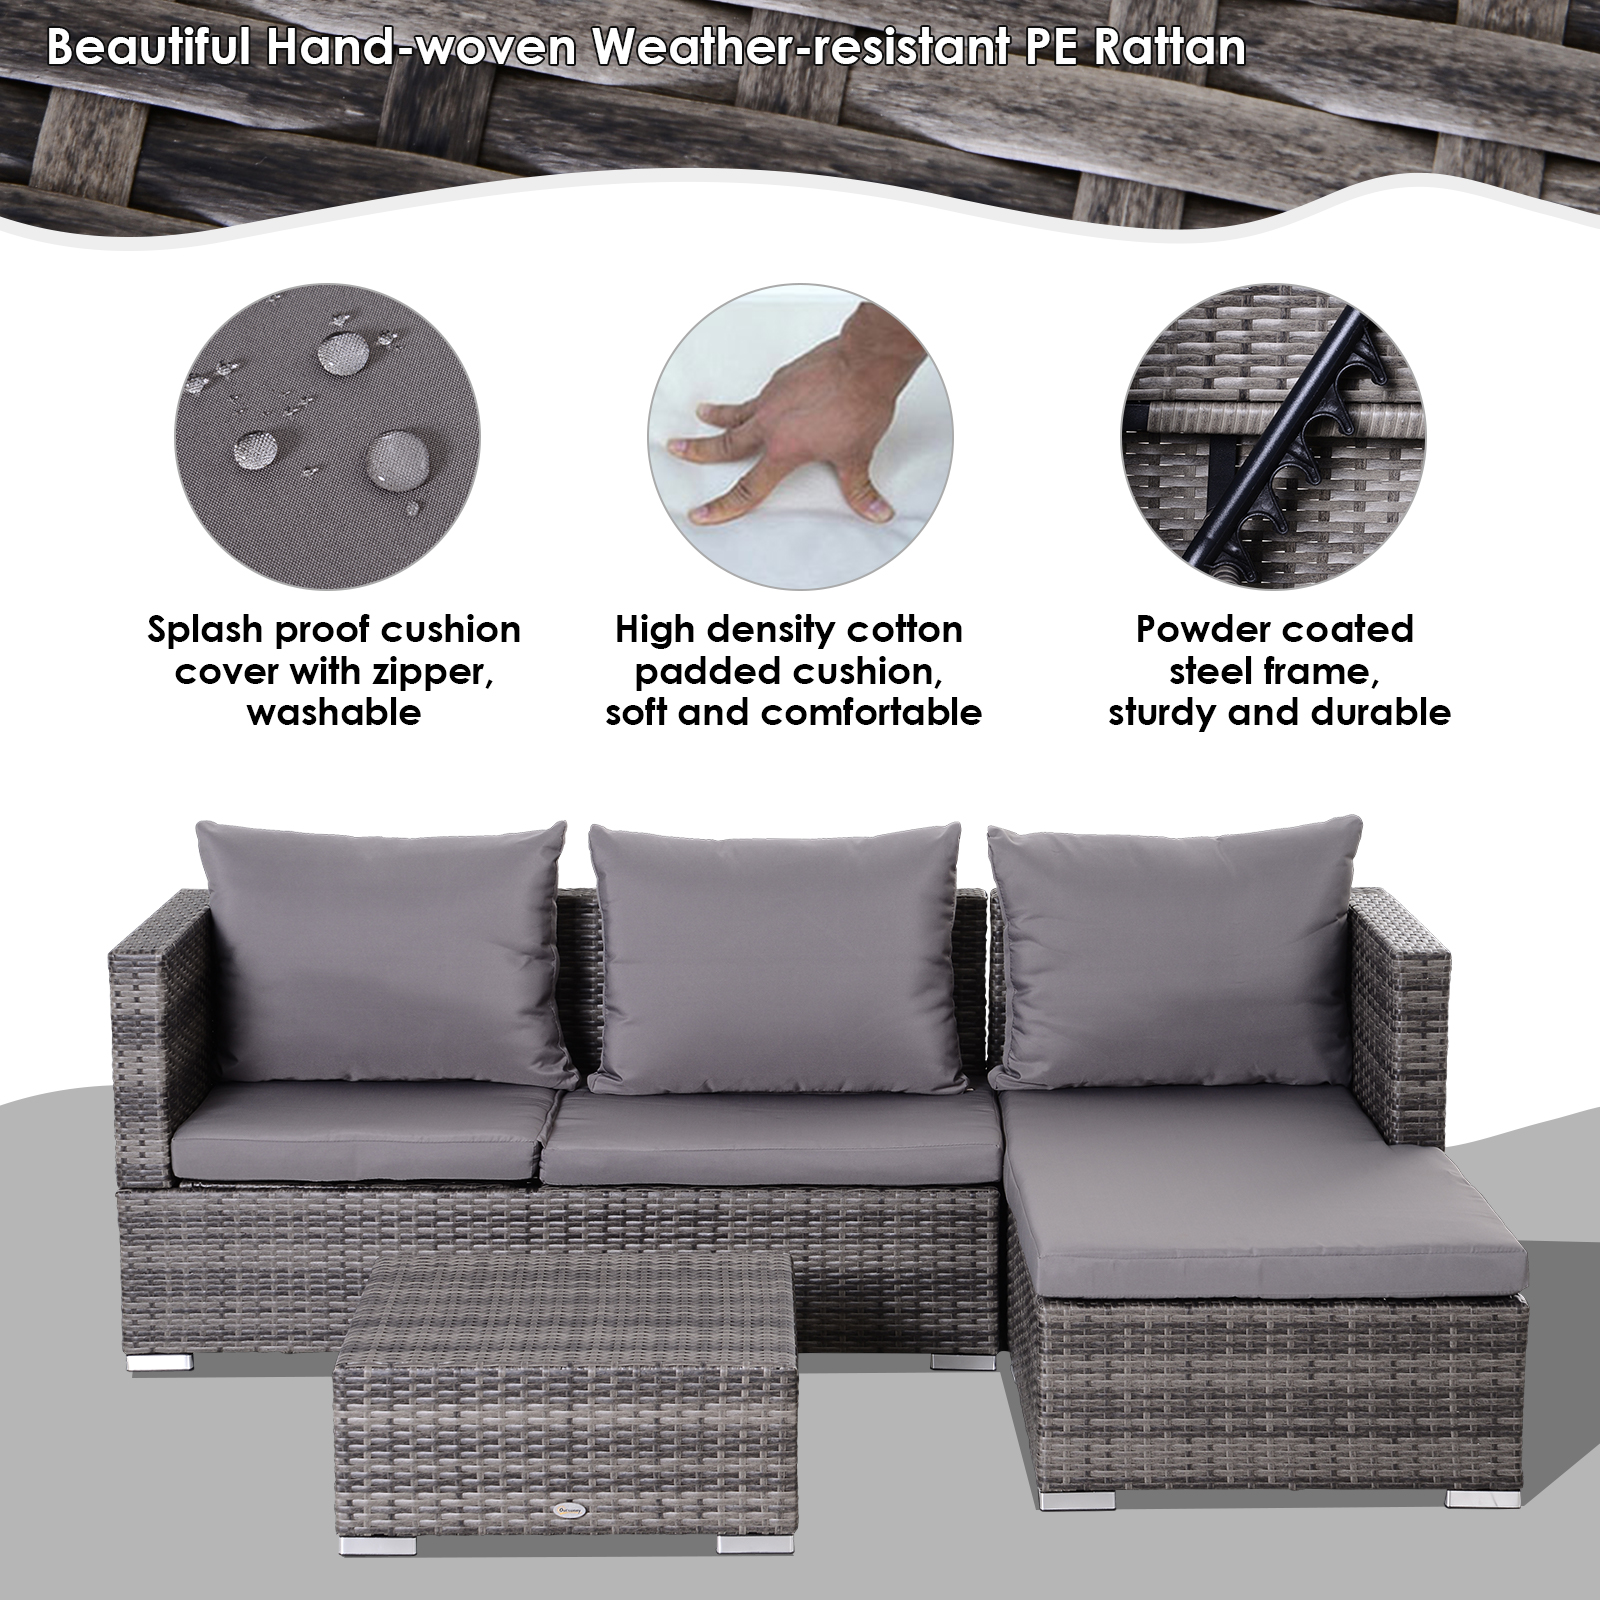 3-Piece-Adjustable-Seat-Rattan-Wicker-Sofa-Set-Sleeping-Couch-Bed-Lounge-Grey miniature 5